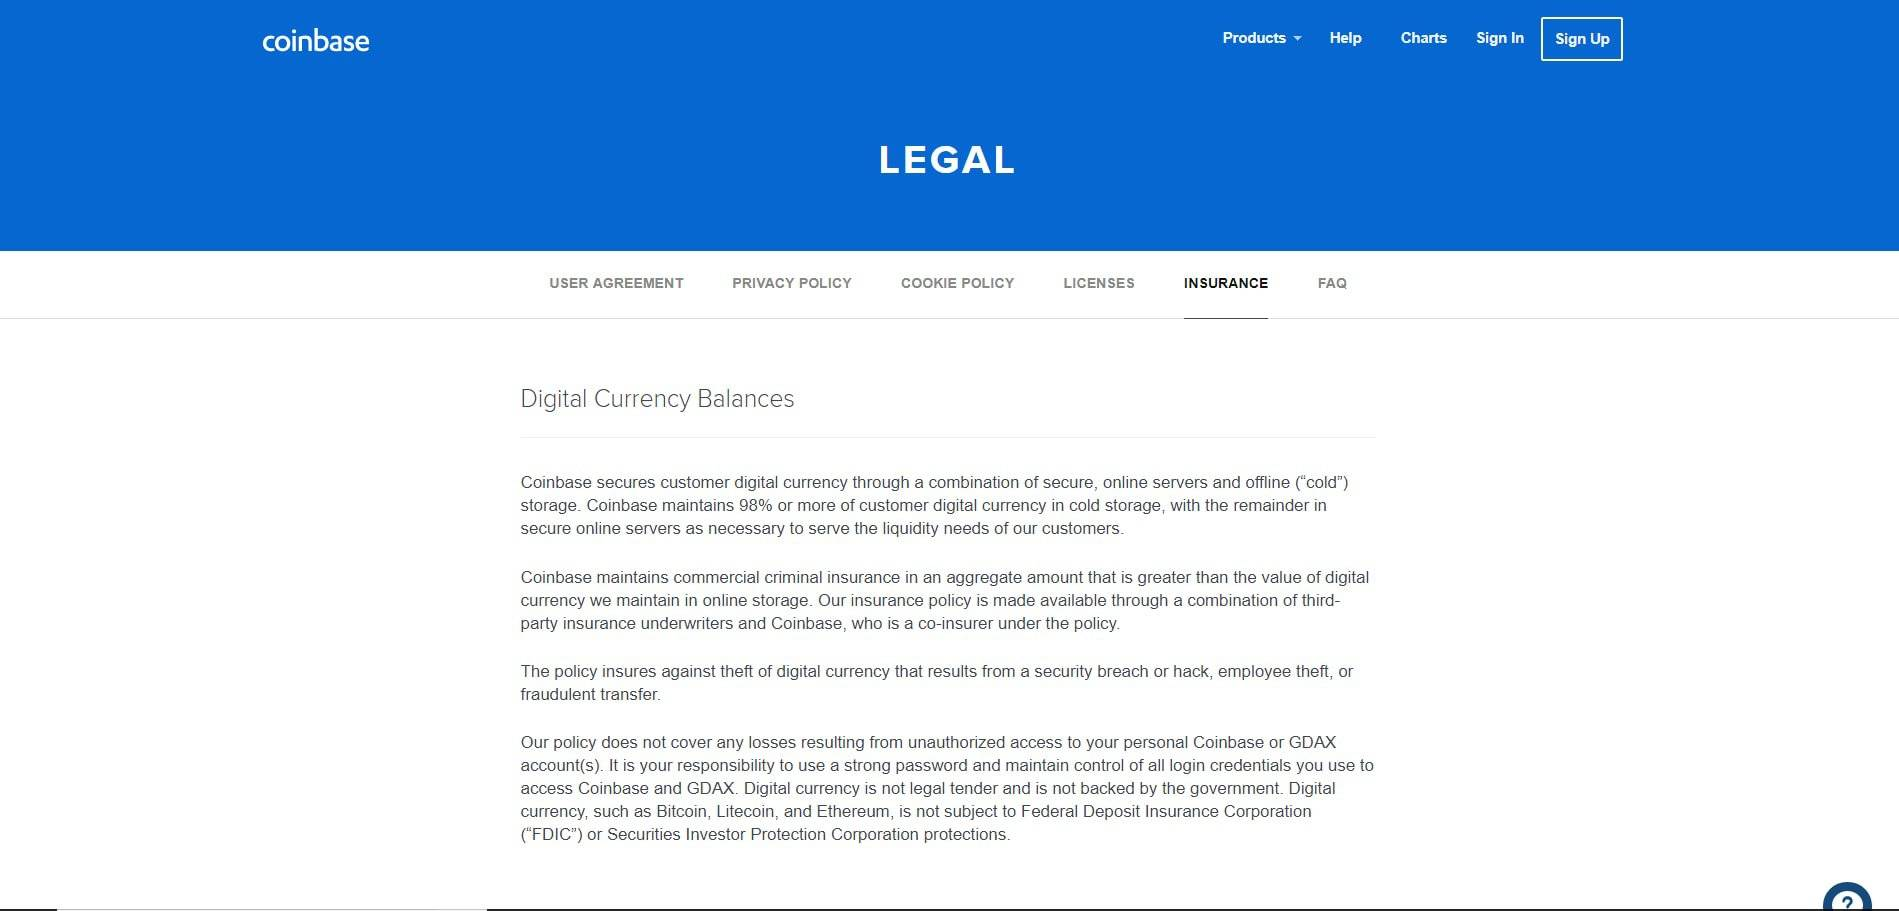 Coinbase review: Coinbase legal page.